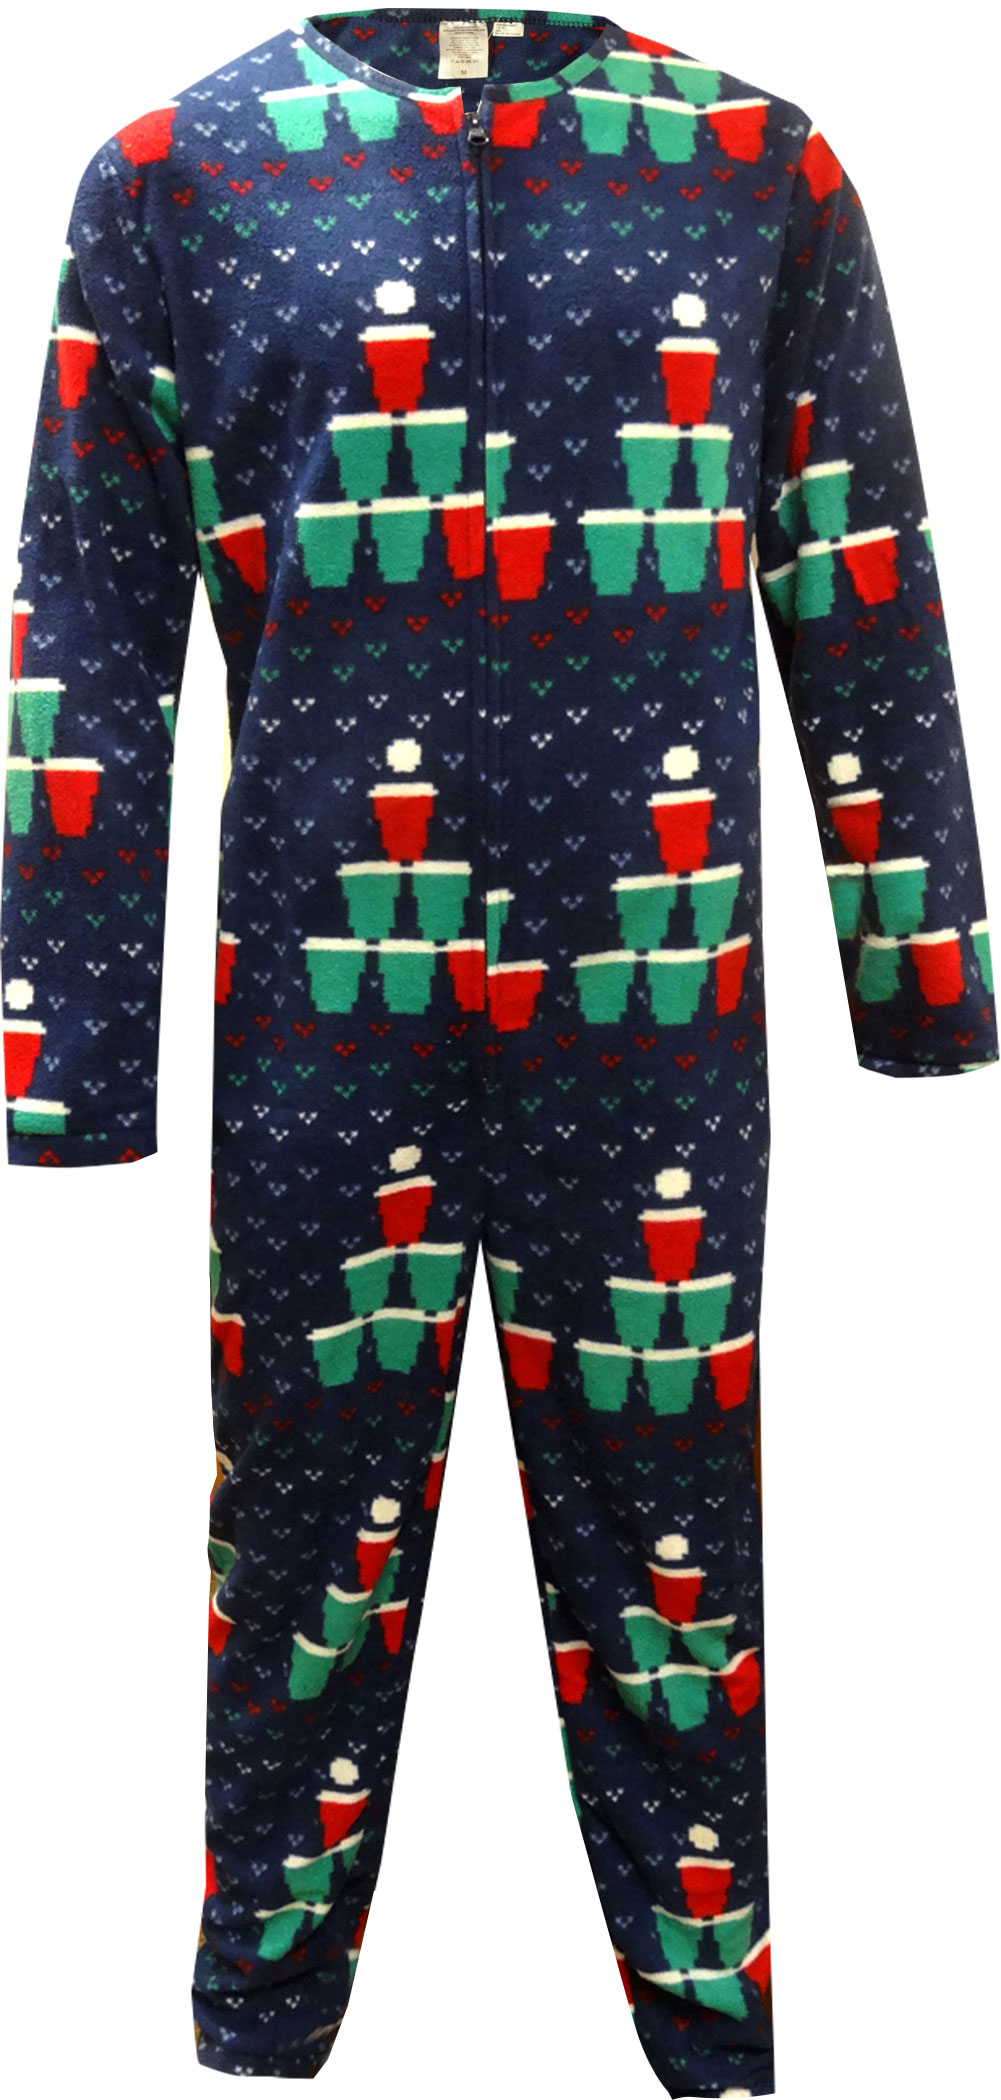 Shop for christmas pajamas online at Target. Free shipping on purchases over $35 and save 5% every day with your Target REDcard.